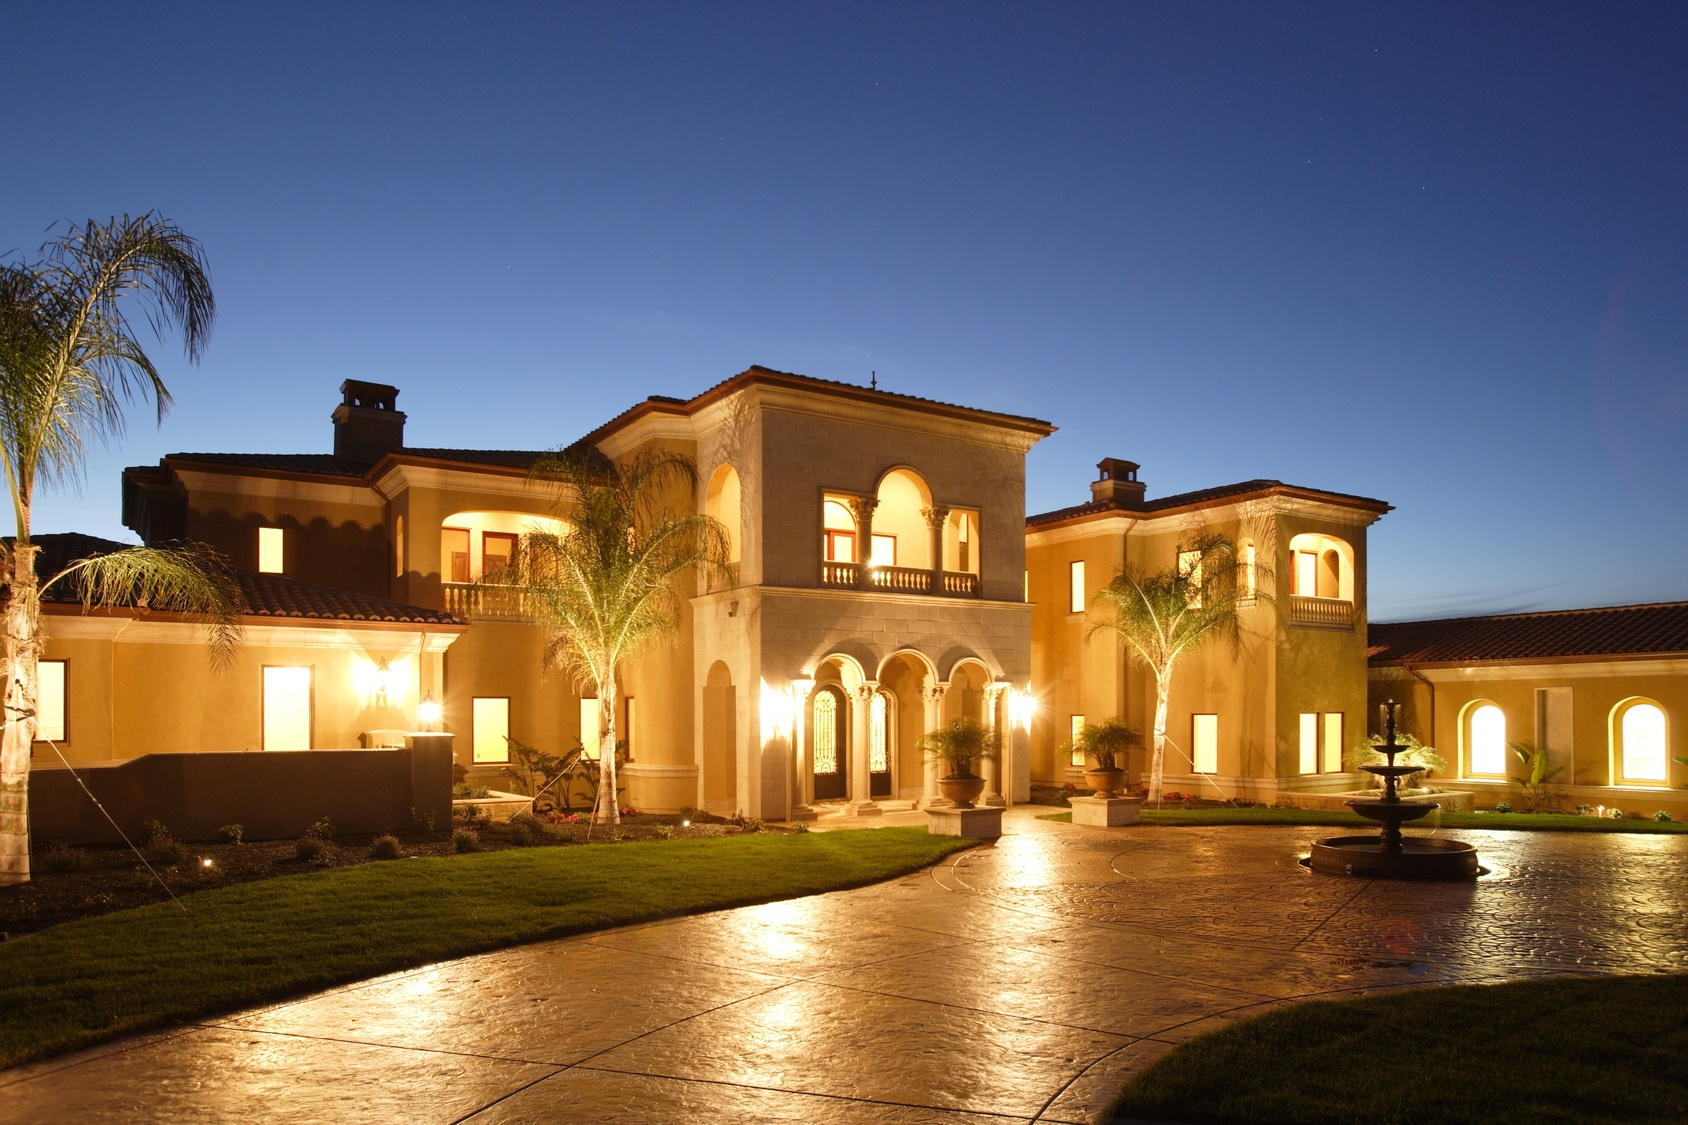 Orlando area home styles mediterranean villas to high for Spanish style homes for sale